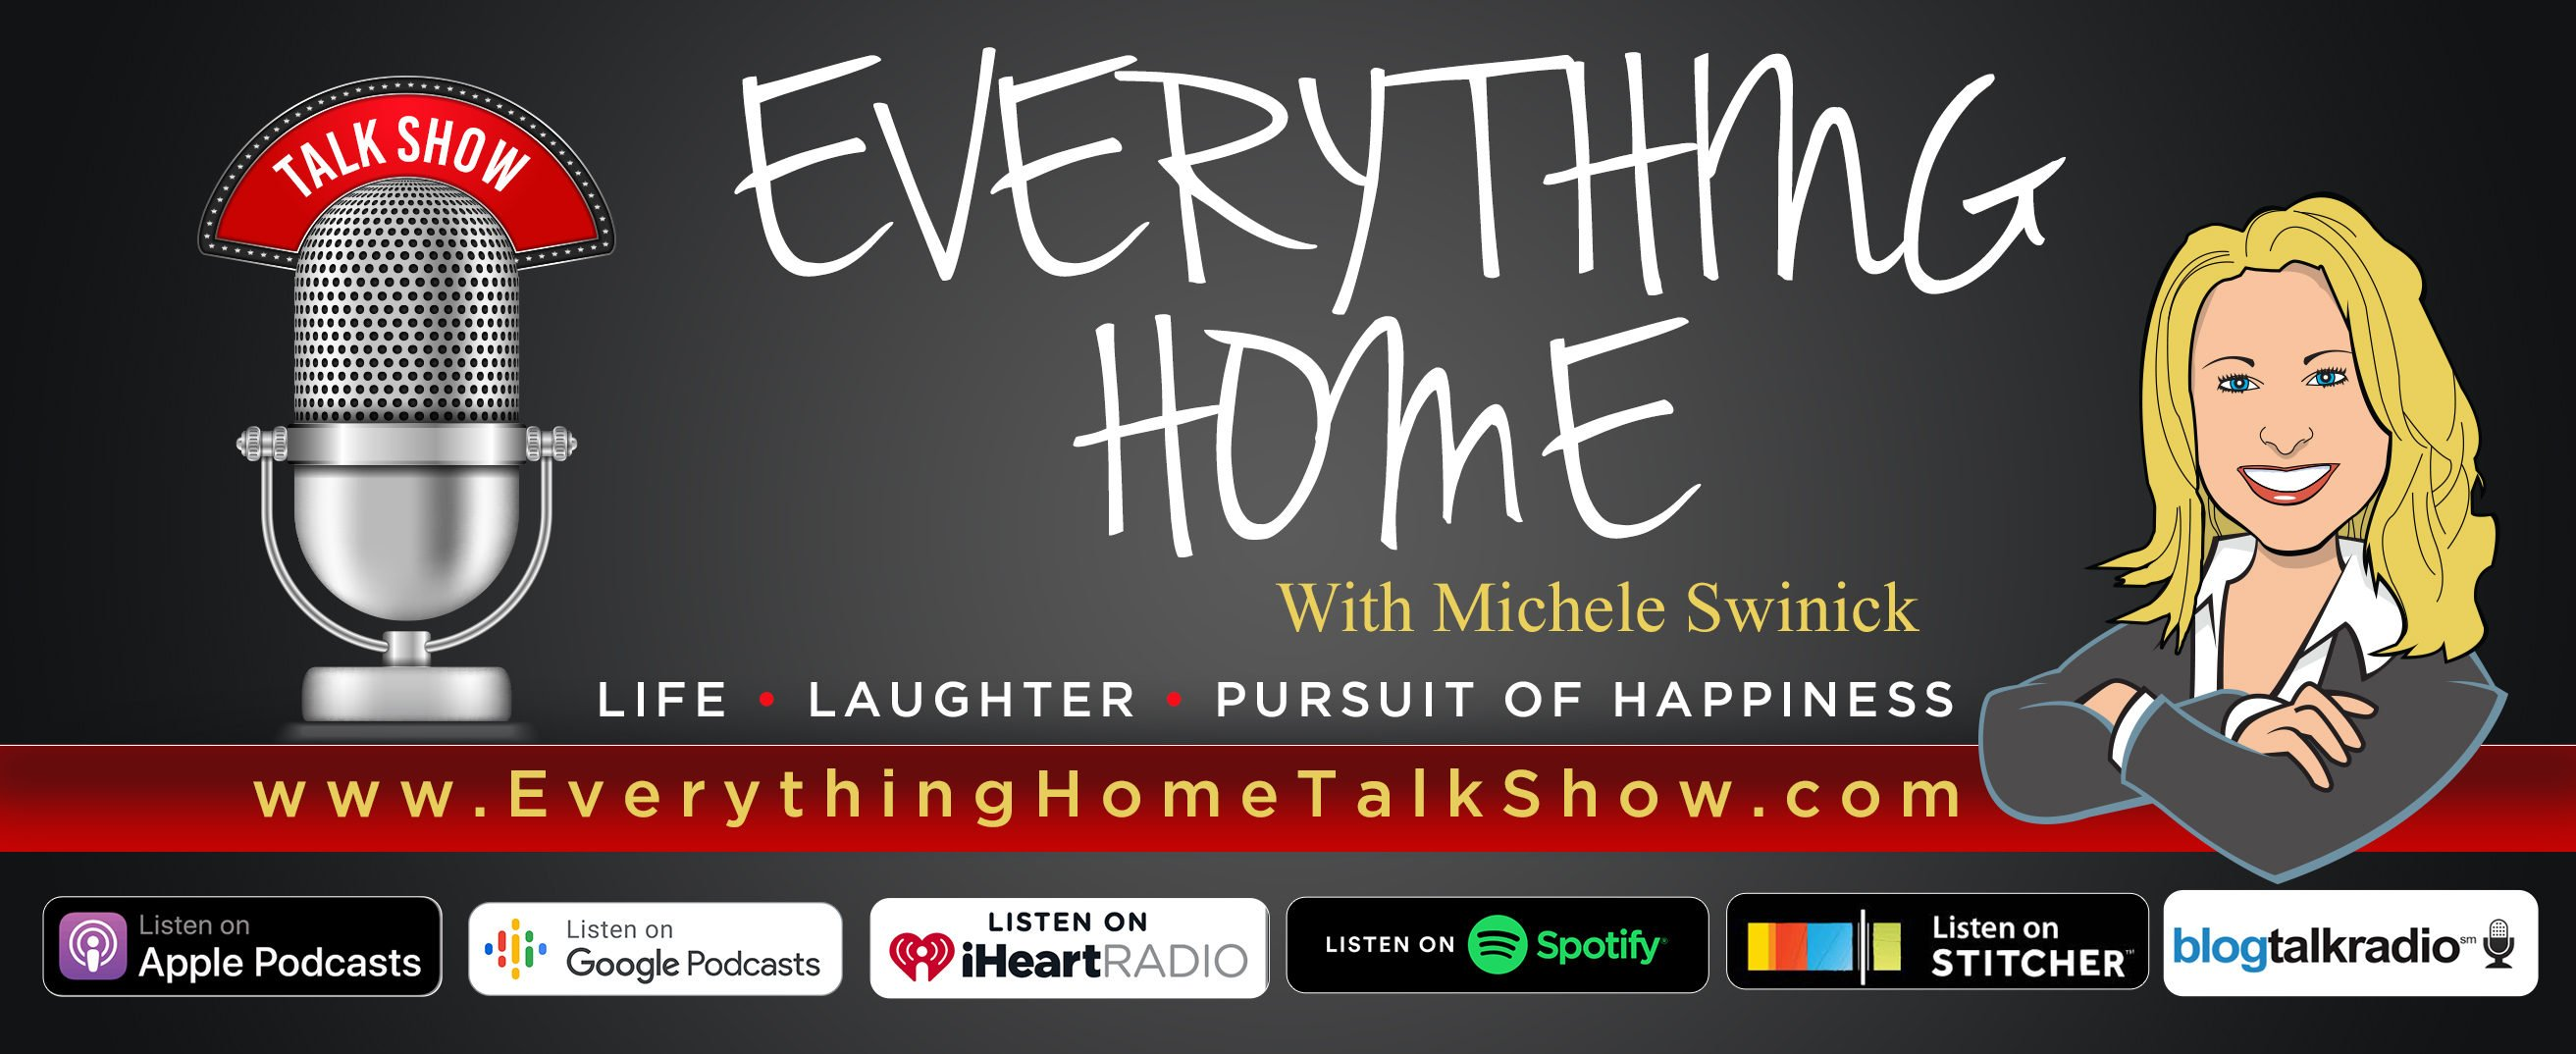 Everything Home Talk Radio Show – Podcast & Patriotic Purpose Driven Platform